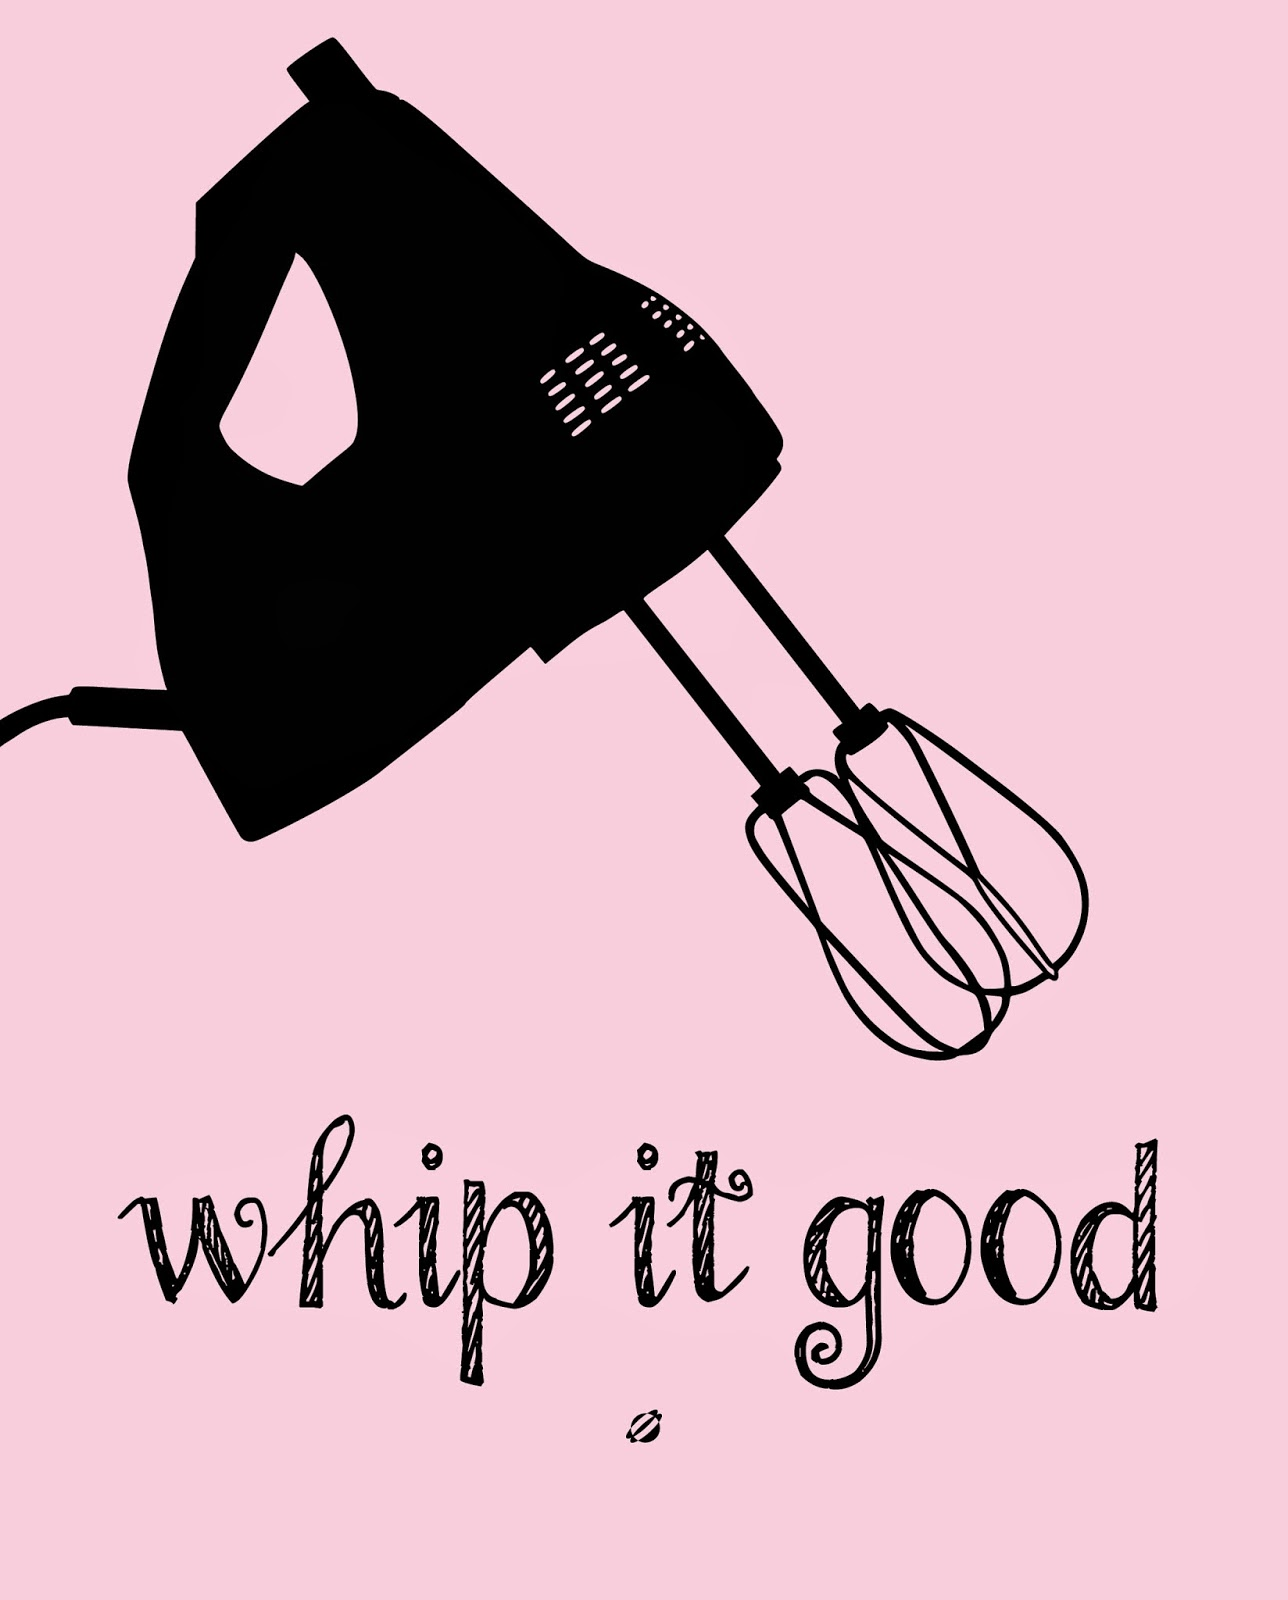 Cupcake Collection LostBumblebee 2013- Whip it Good